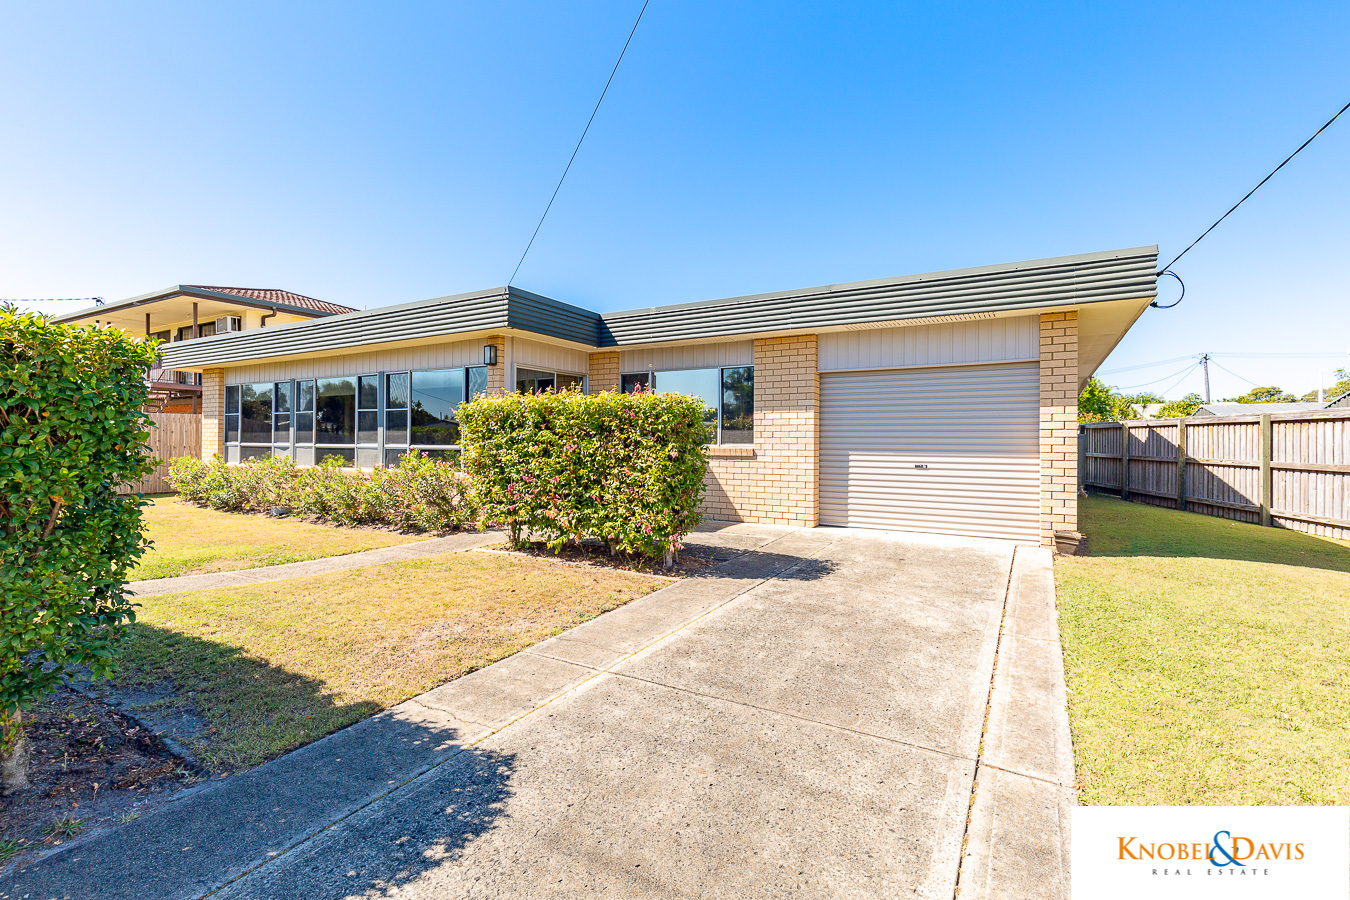 We were uncertain about value of sort of property that we wanted to buy as we're not from Bribie.